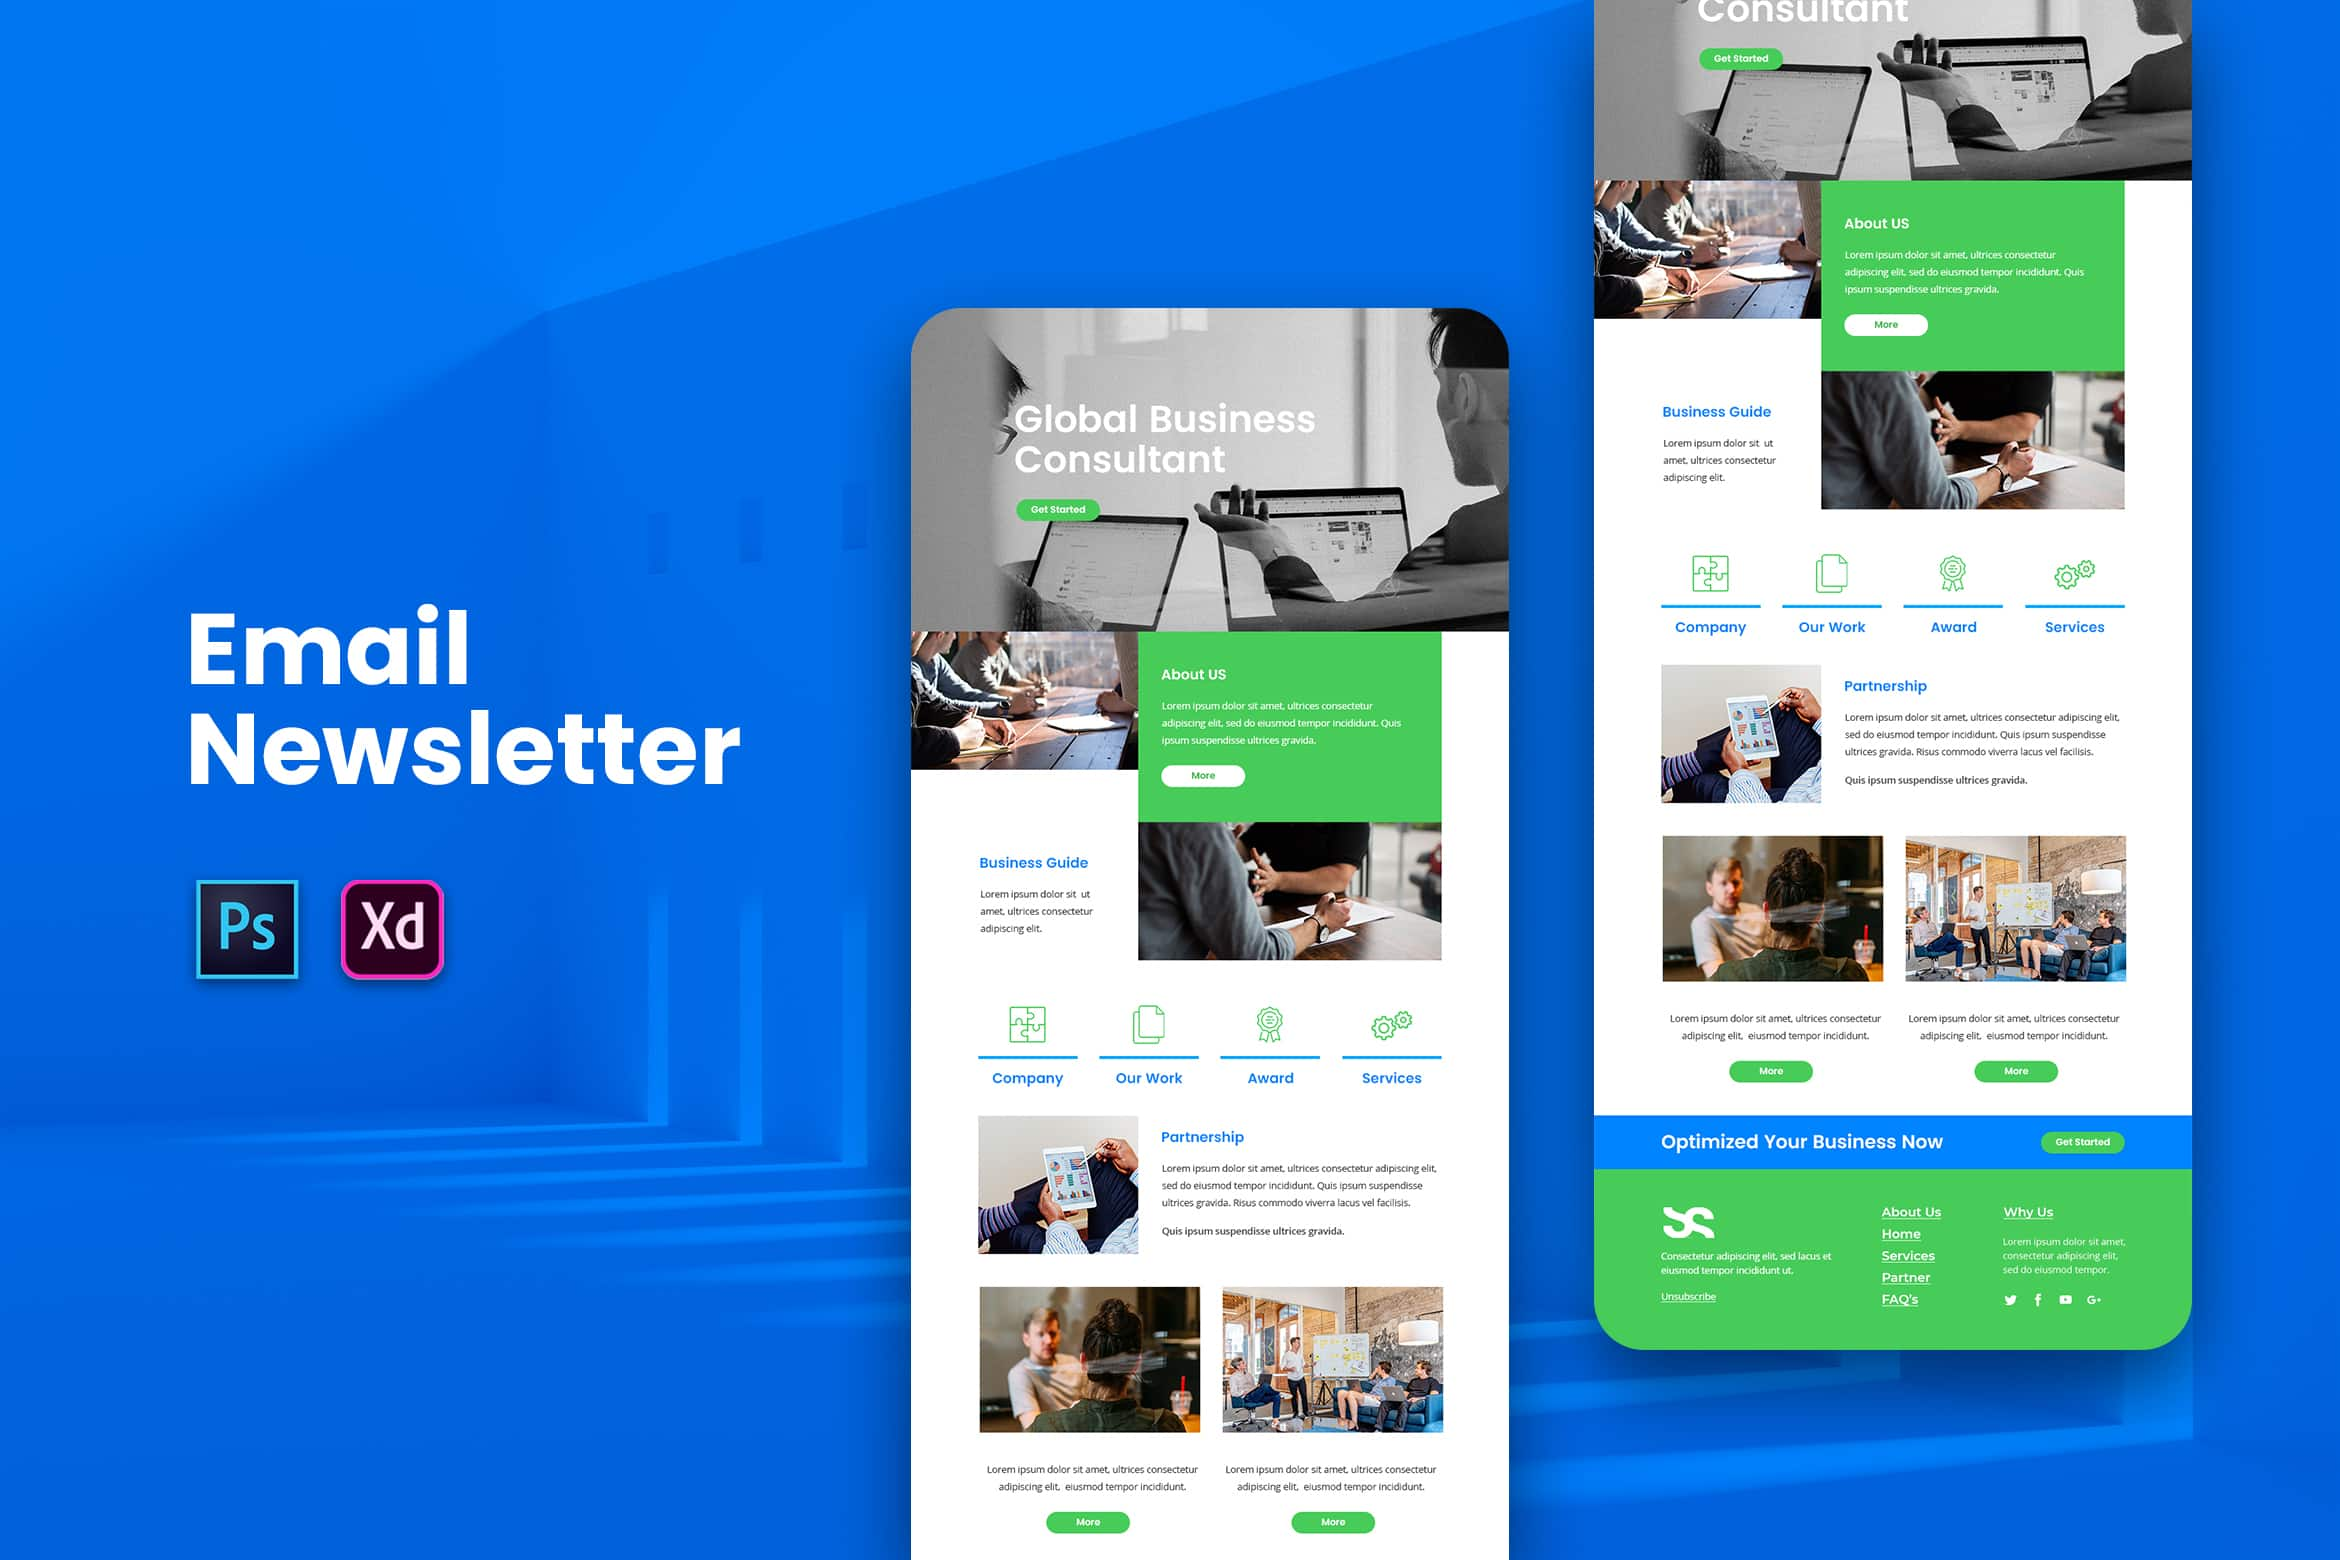 Global Business Consultant - Email Newsletter